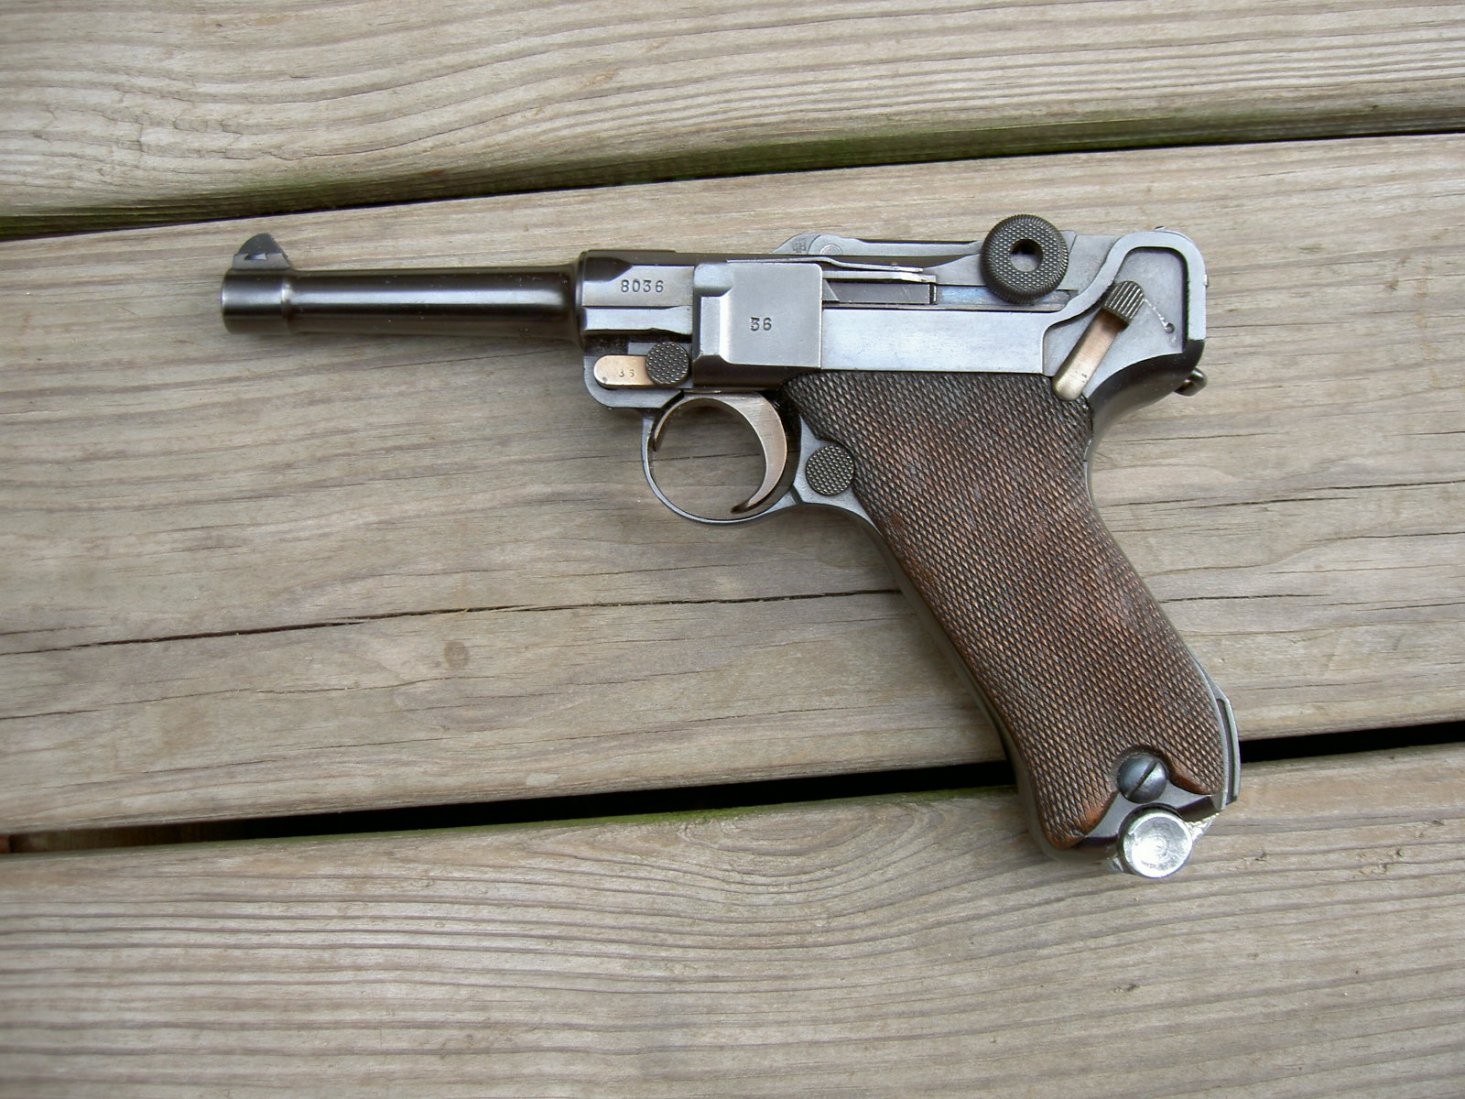 Value of 1939 re-blued Luger?